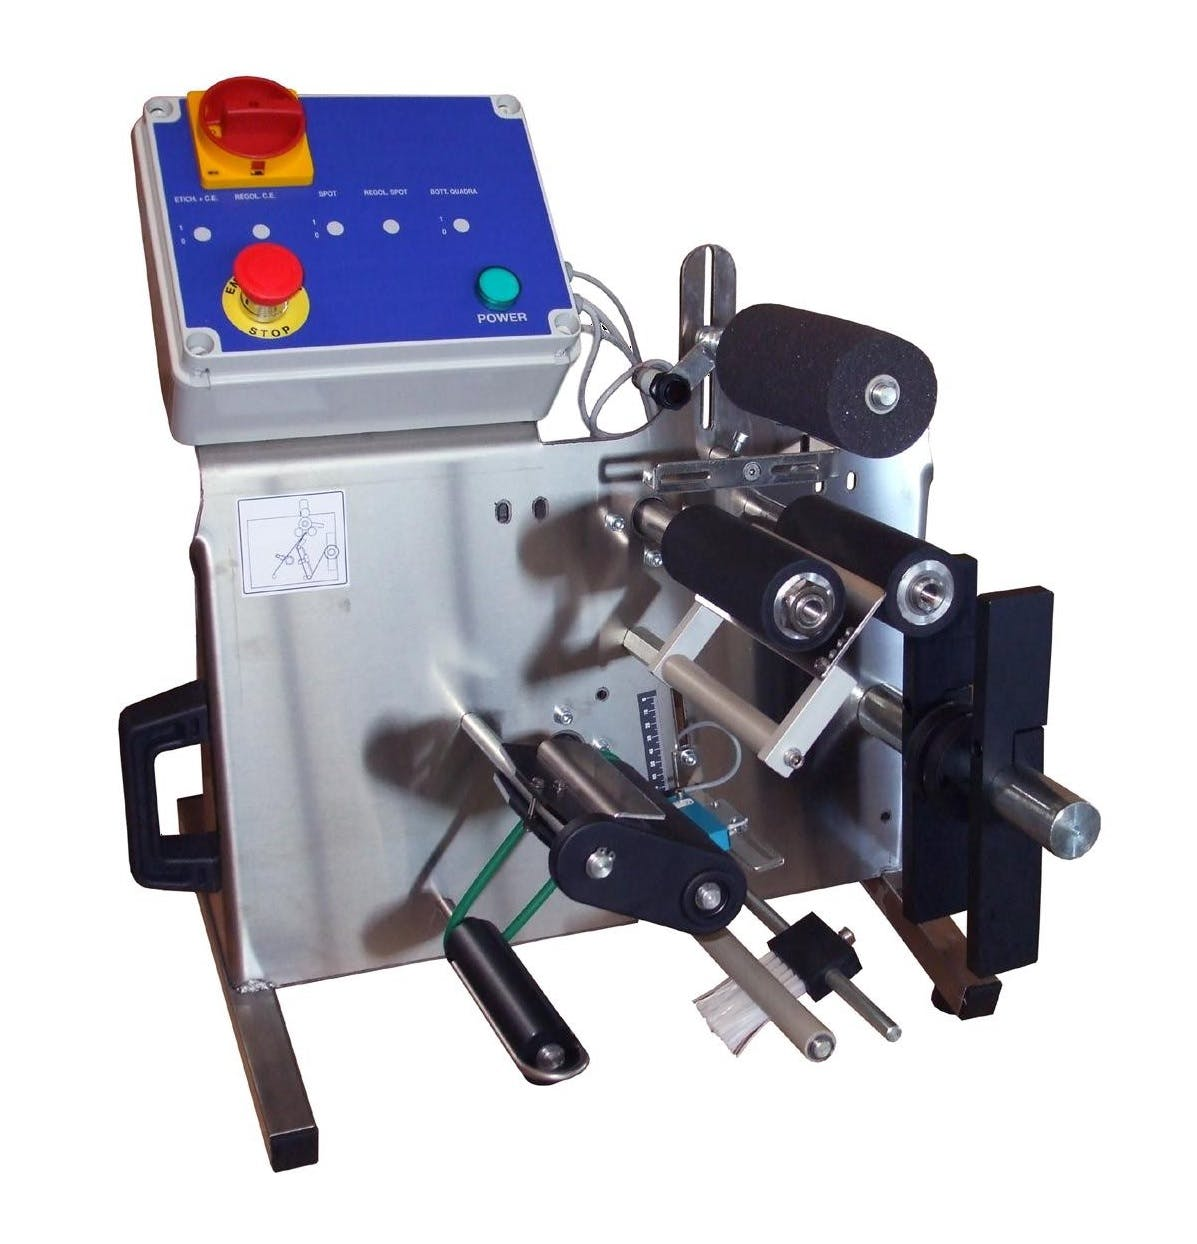 Semi-automatic labeler Bottle labeler sold by The Compleat Winemaker